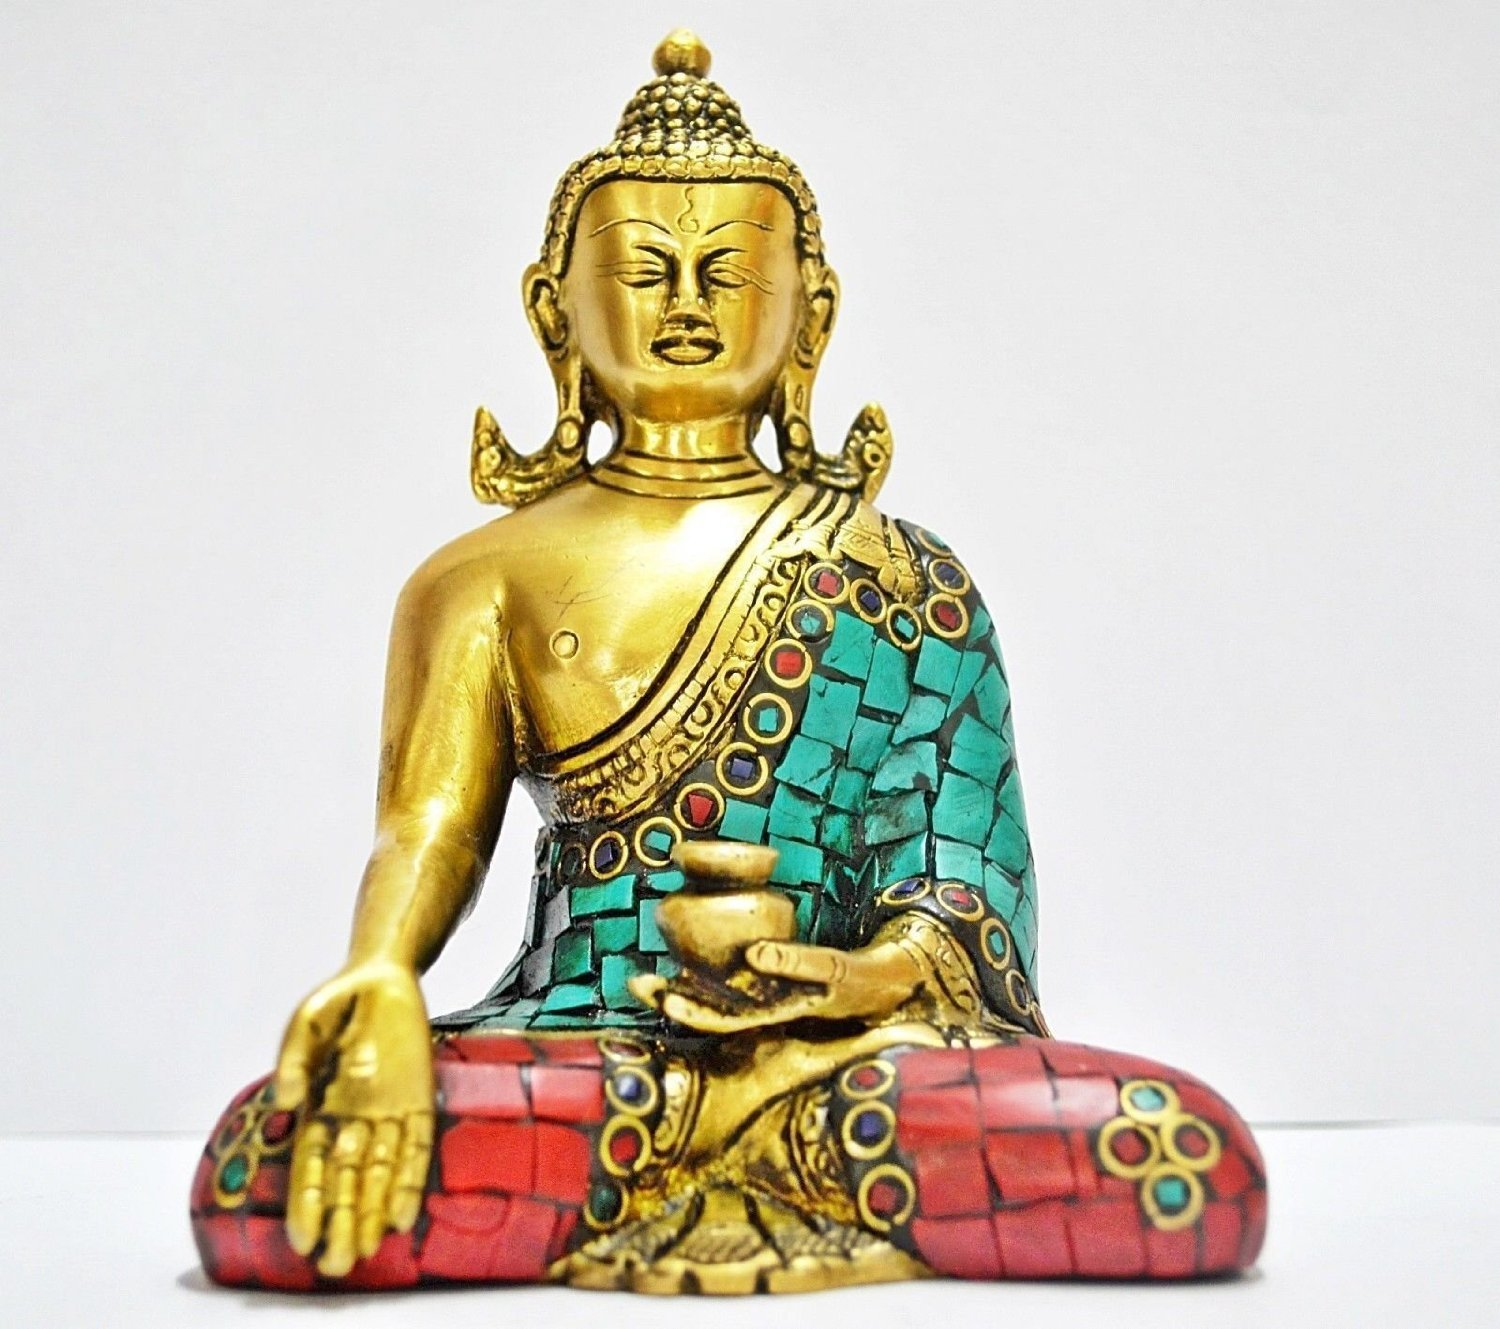 AapnoCraft Thai Bhumisparsh Buddha Sculpture Inspirational Religious Buddha Statue Brass Idols of Buddha Home Decor